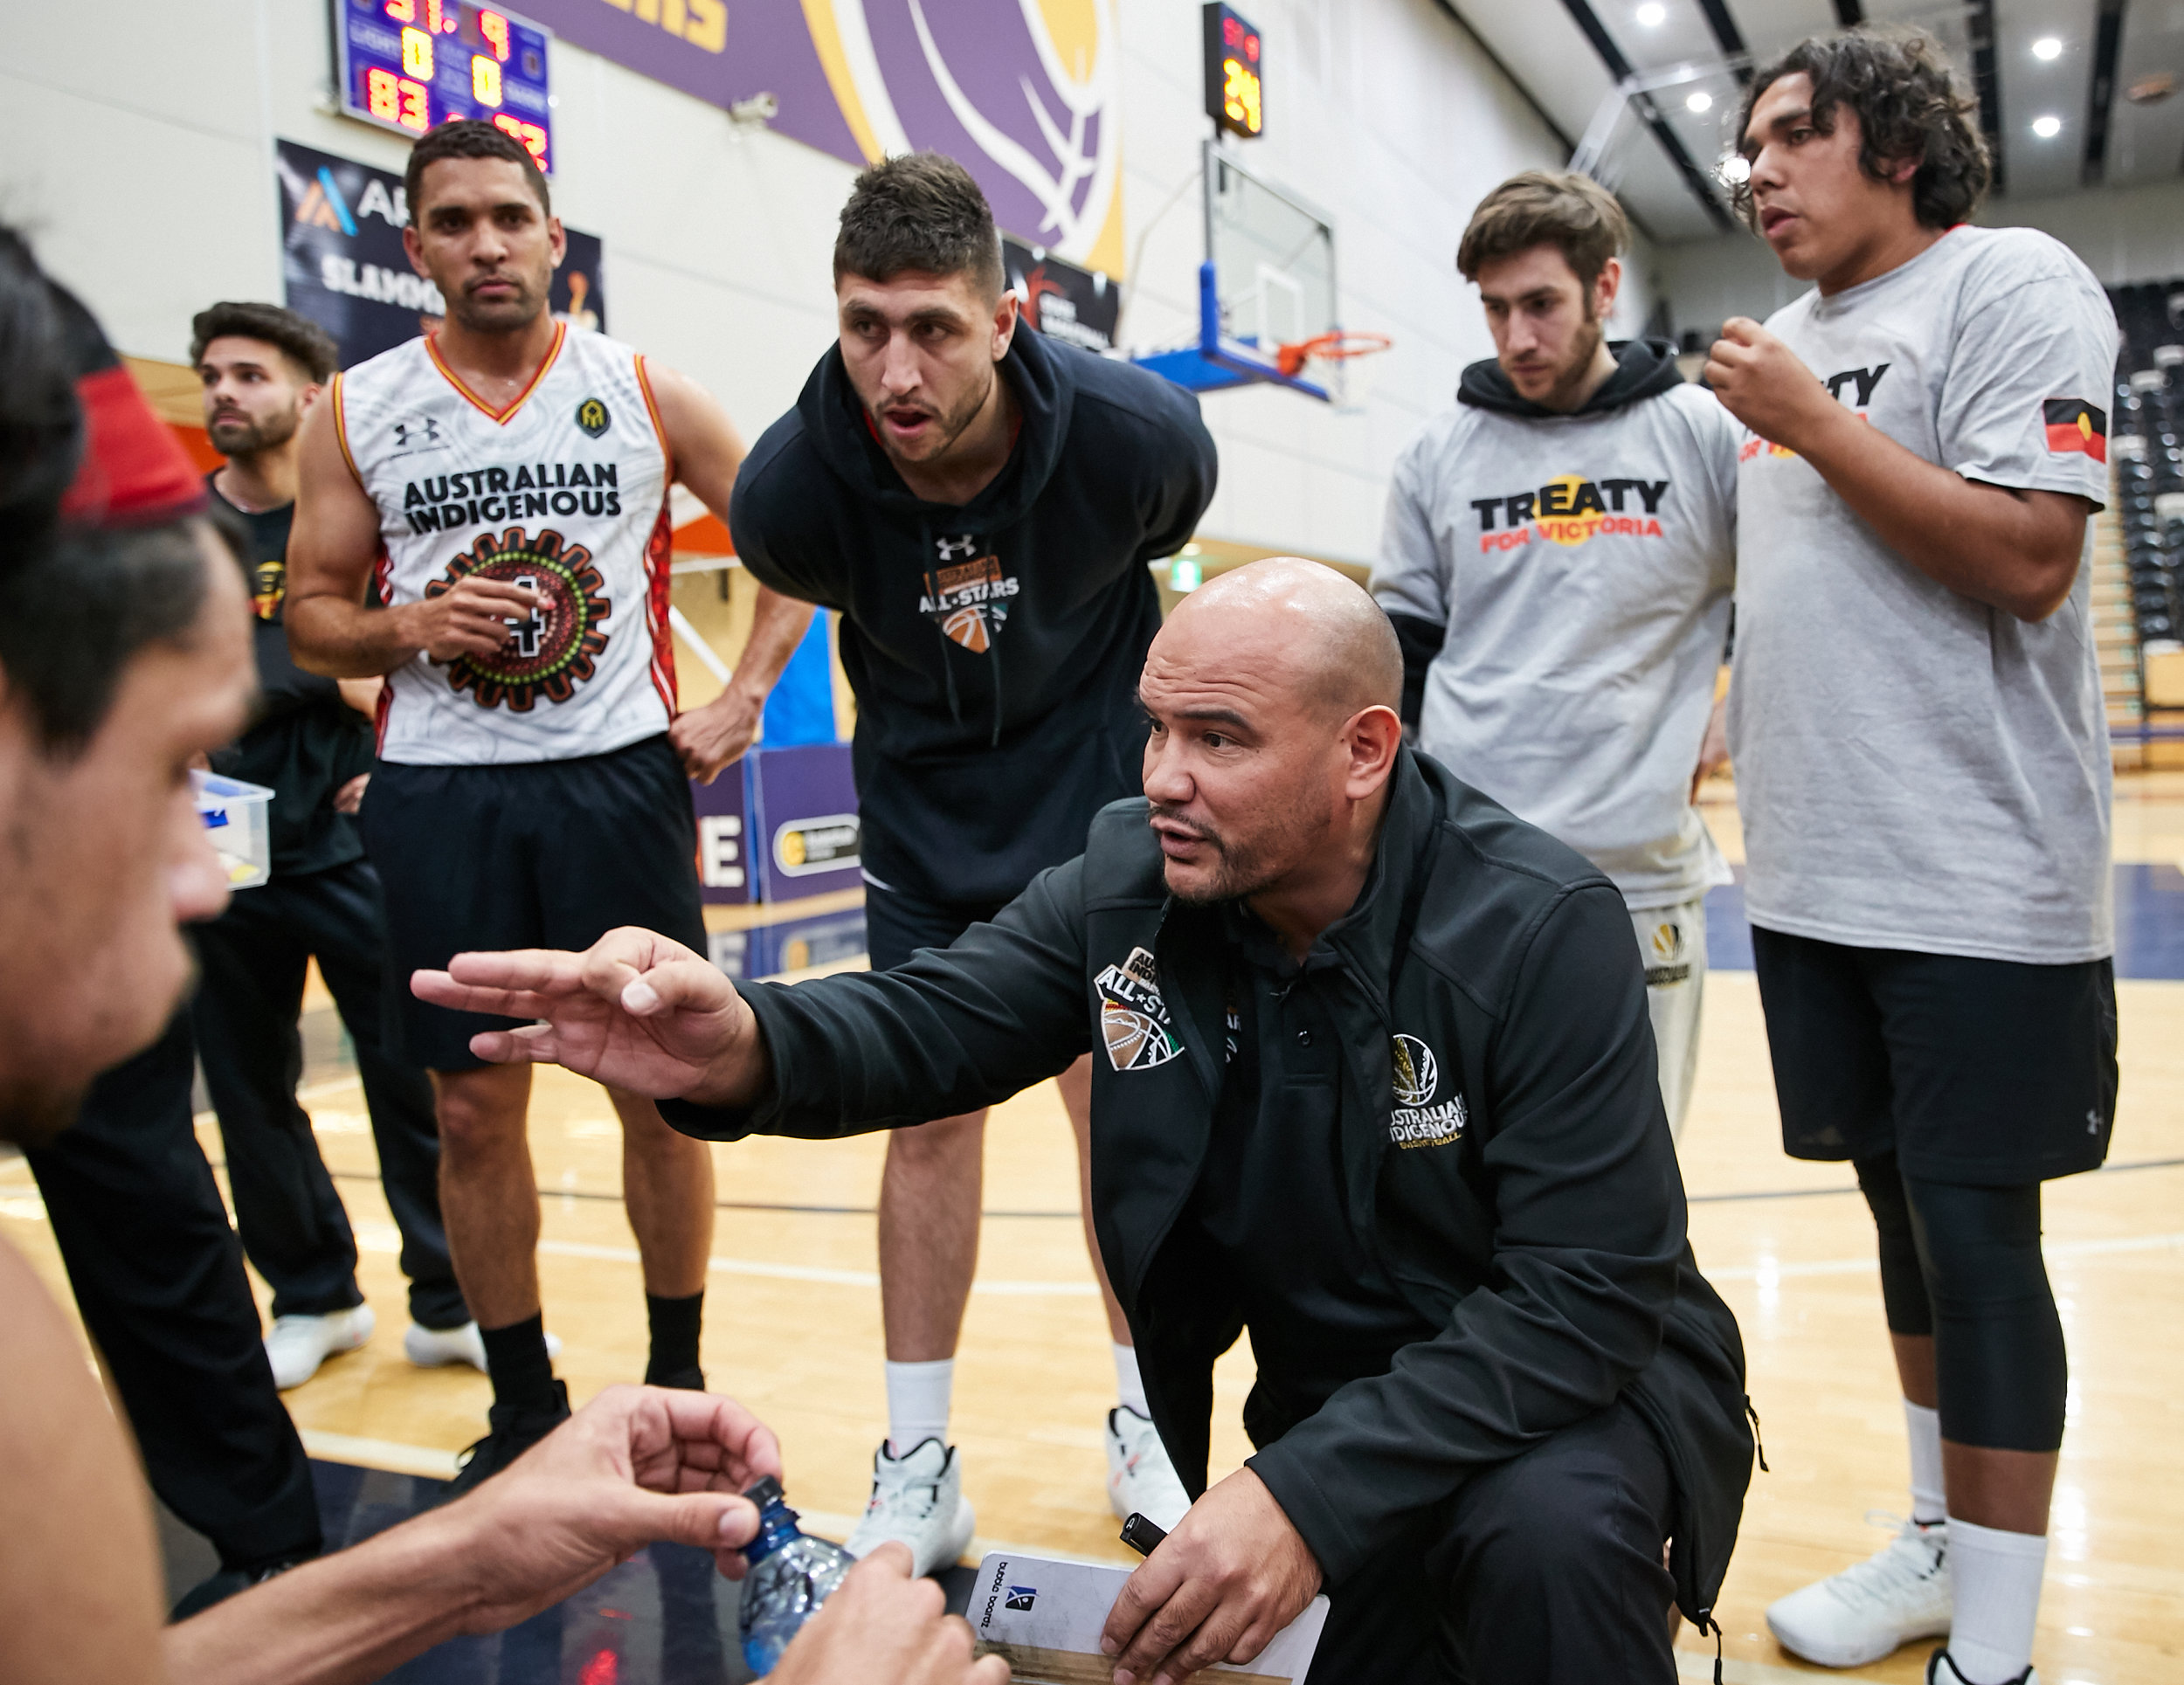 Khalu in action as head coach of the Australian Indigenous Basketball All Stars. Picture: Provided.